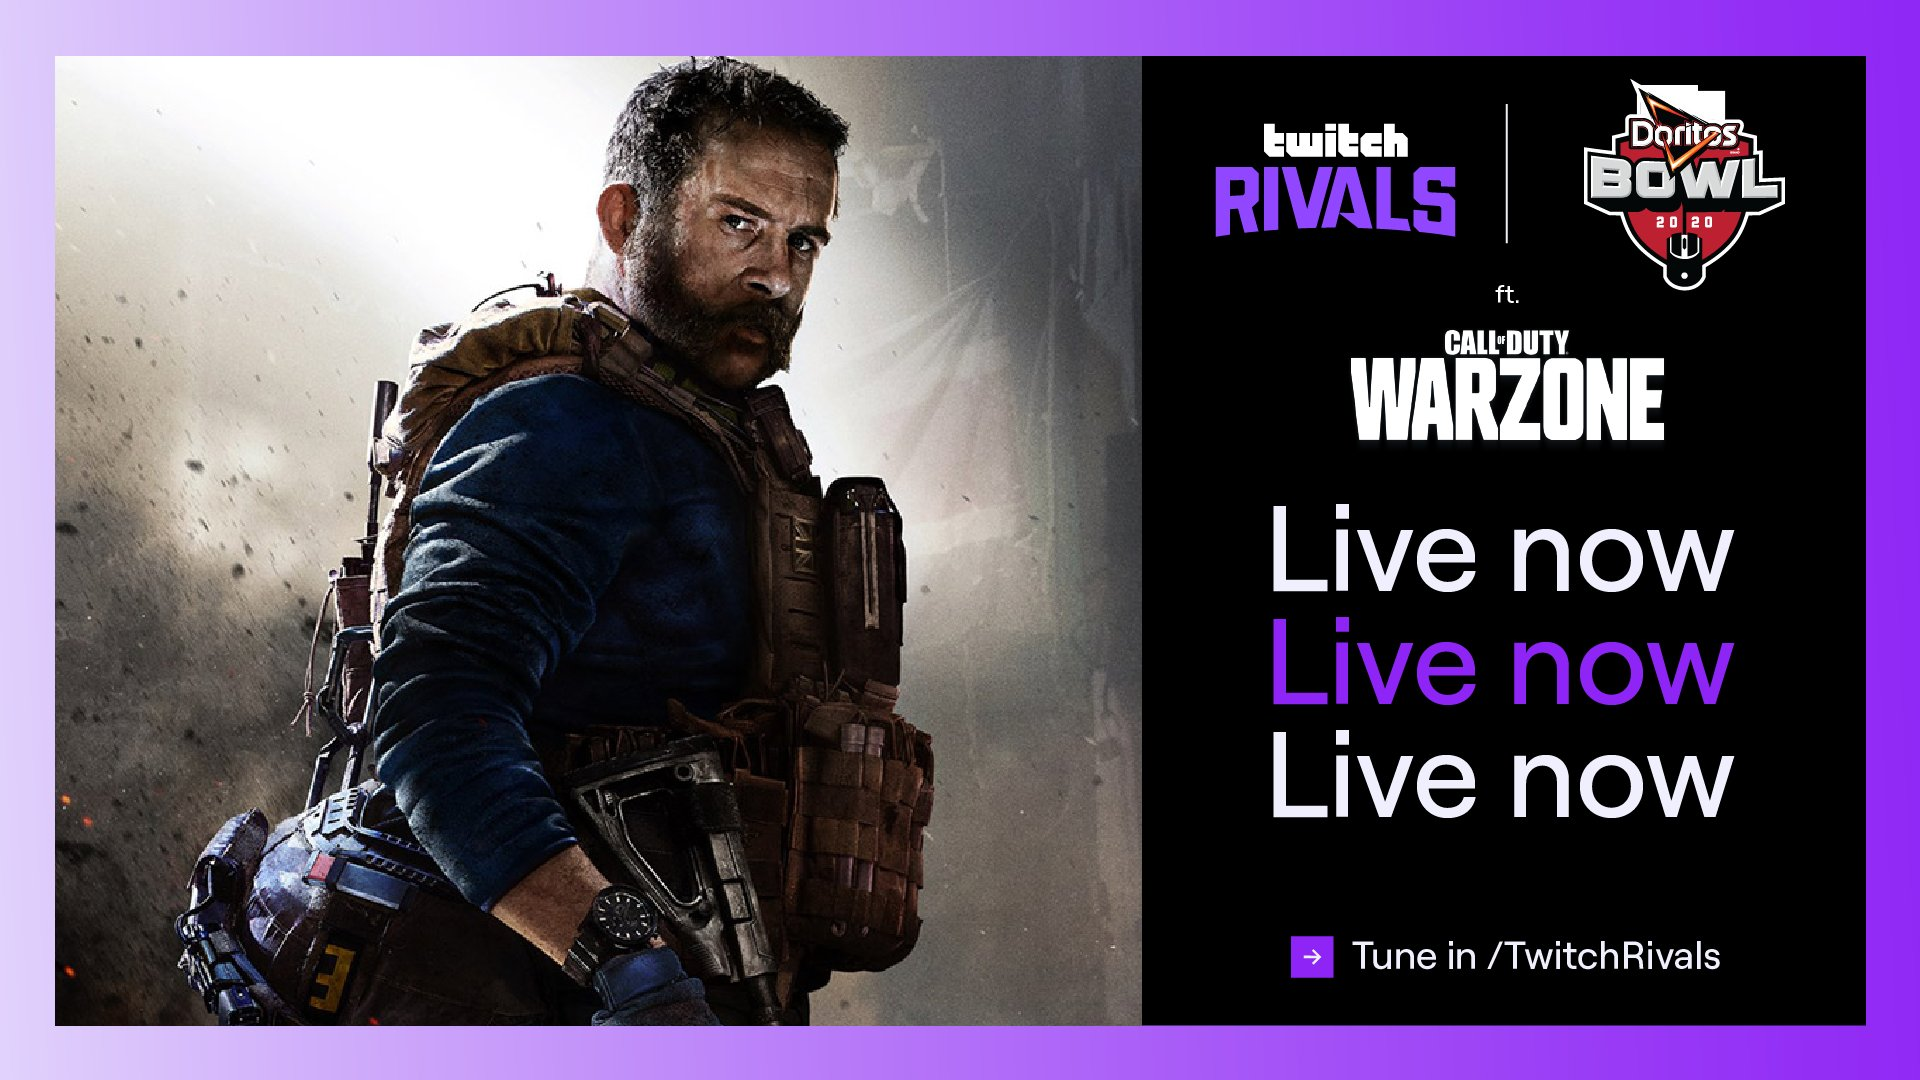 """twitch rivals doritos bowl metzy cheating - Download """"Call of Duty: Warzone"""" player METZY disqualified for cheating in Twitch Rivals, then accuser recants for FREE - Free Game Hacks"""